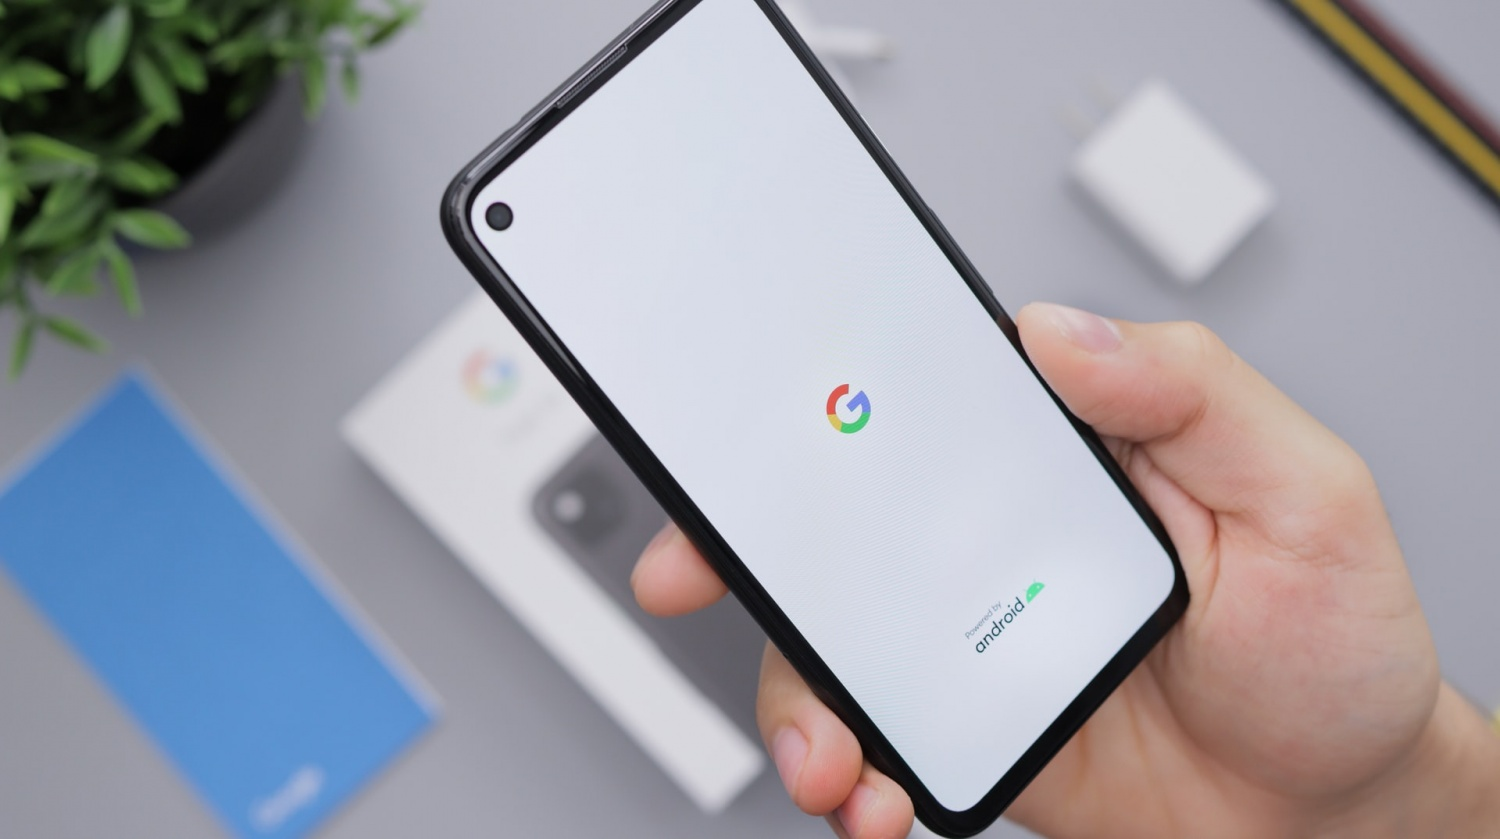 Google Pixel 5: Here are Really Awesome Tips and Tricks for Everyone